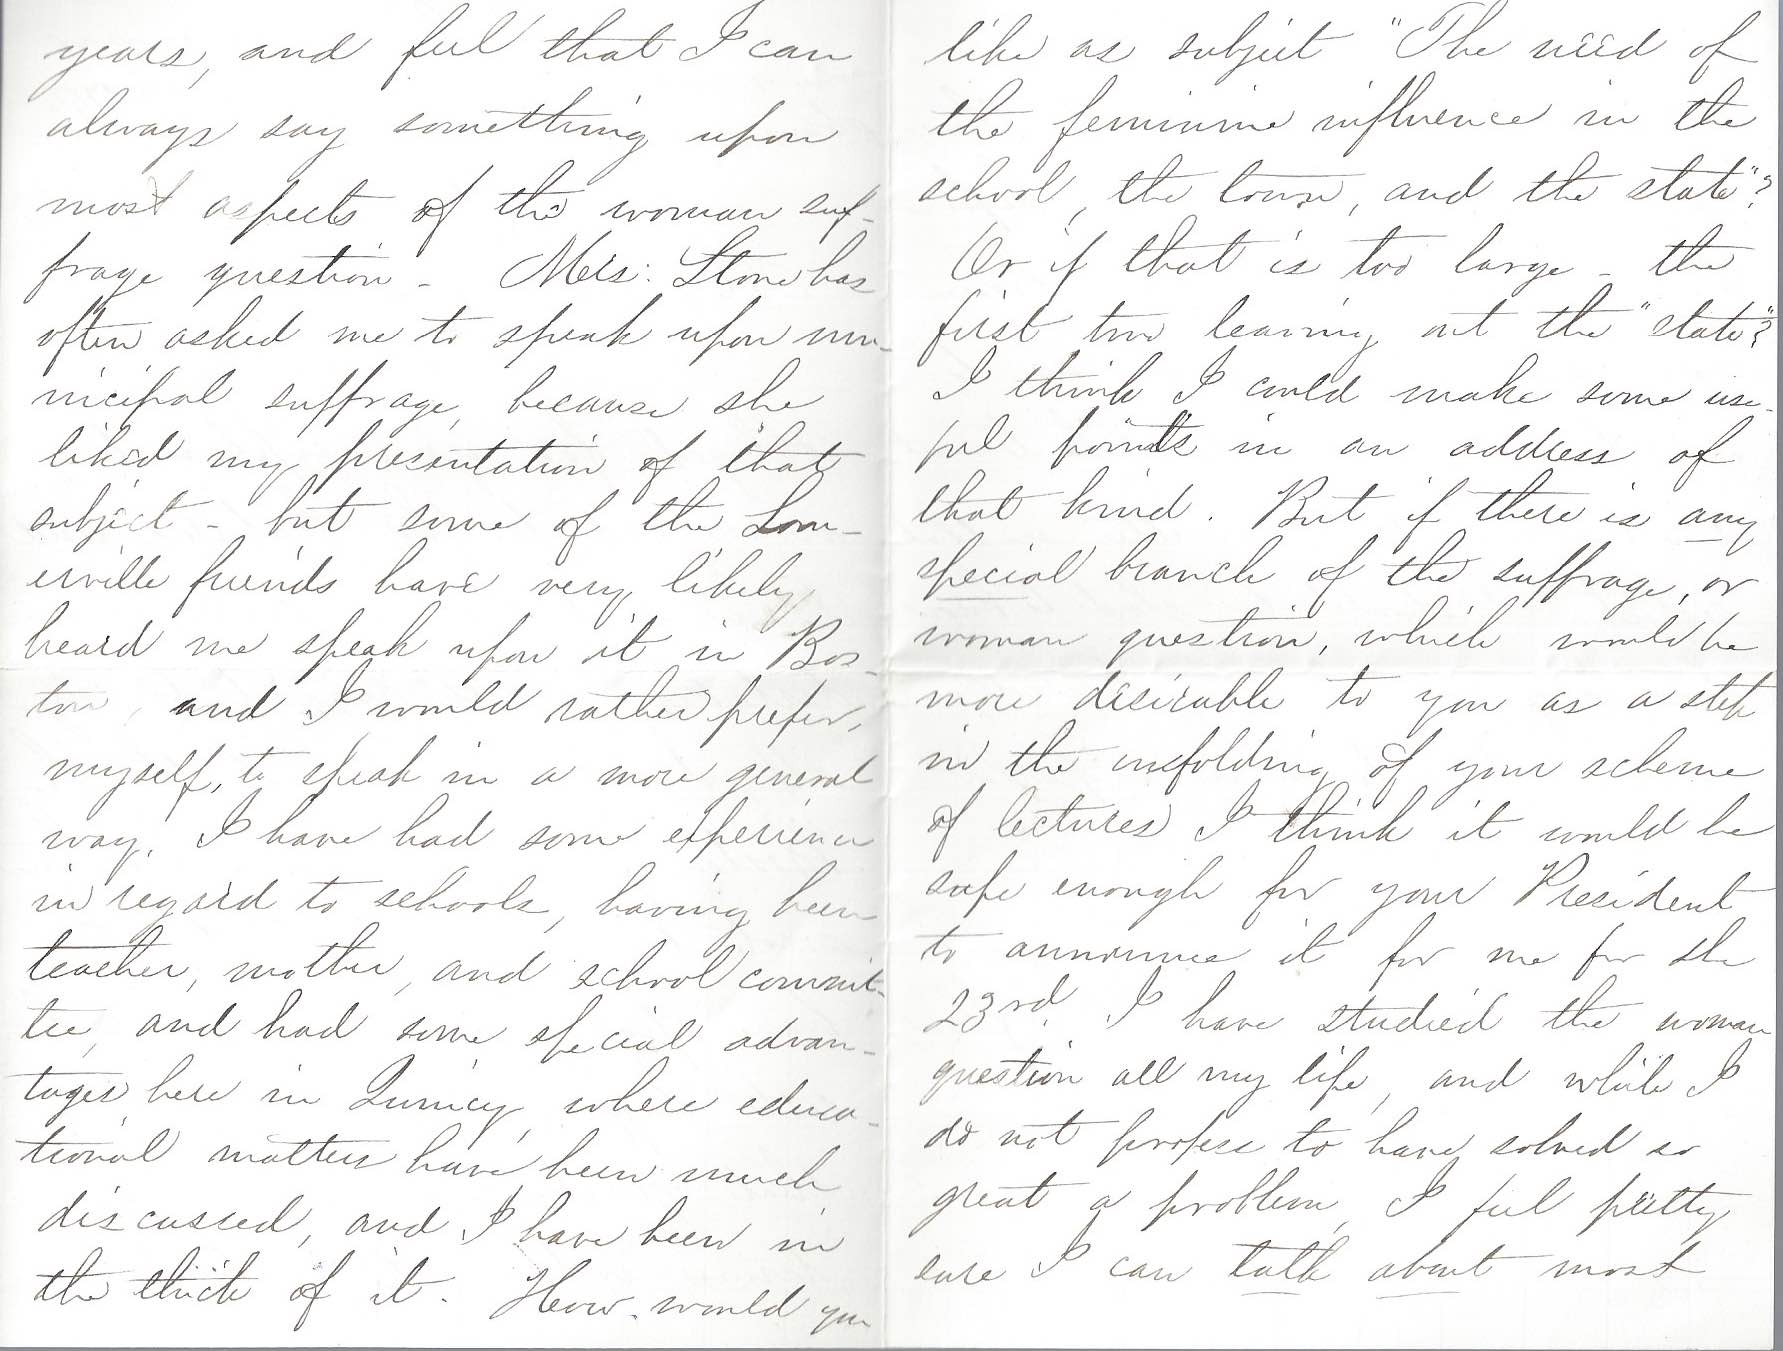 Pages two and three of a handwritten letter from Adelaide Claflin to Mrs. Hollander regarding a speaking engagement with the woman suffrage association in November 1884.